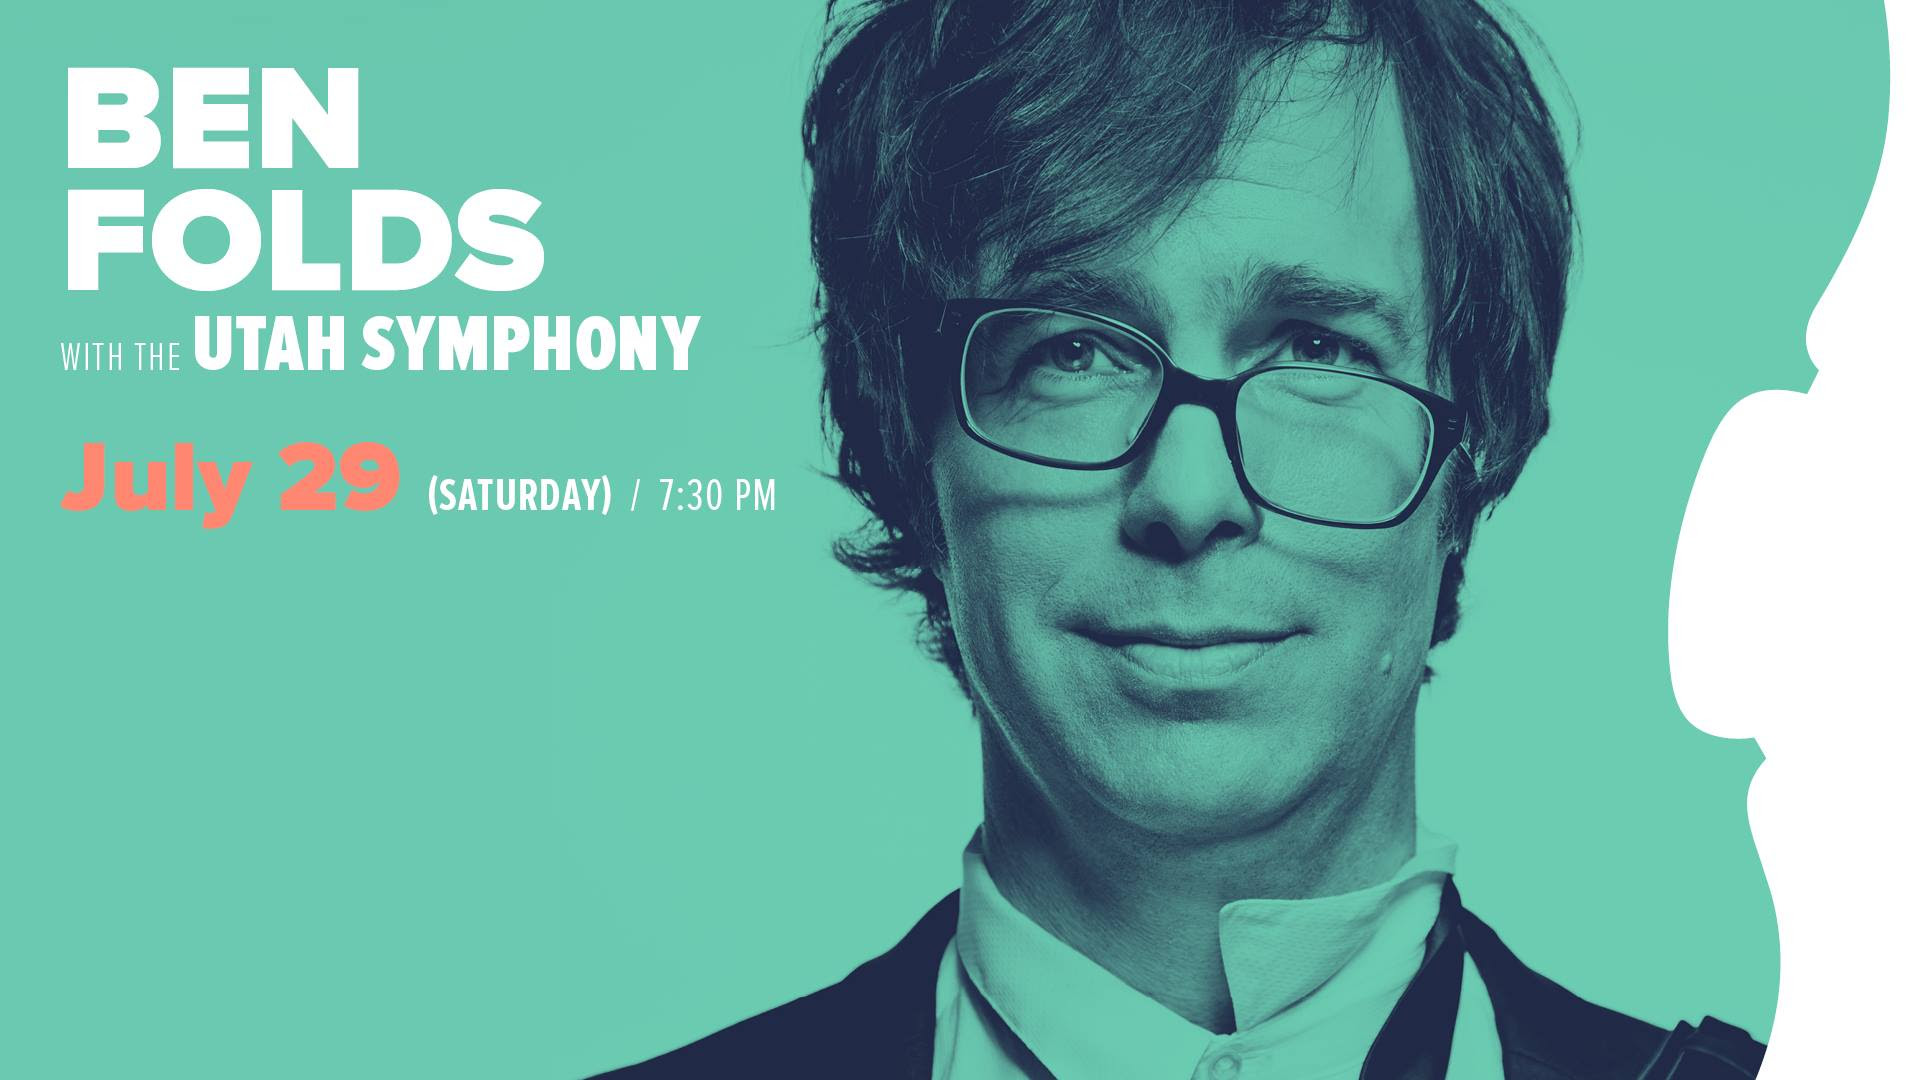 Ben Folds with the Utah Symphony